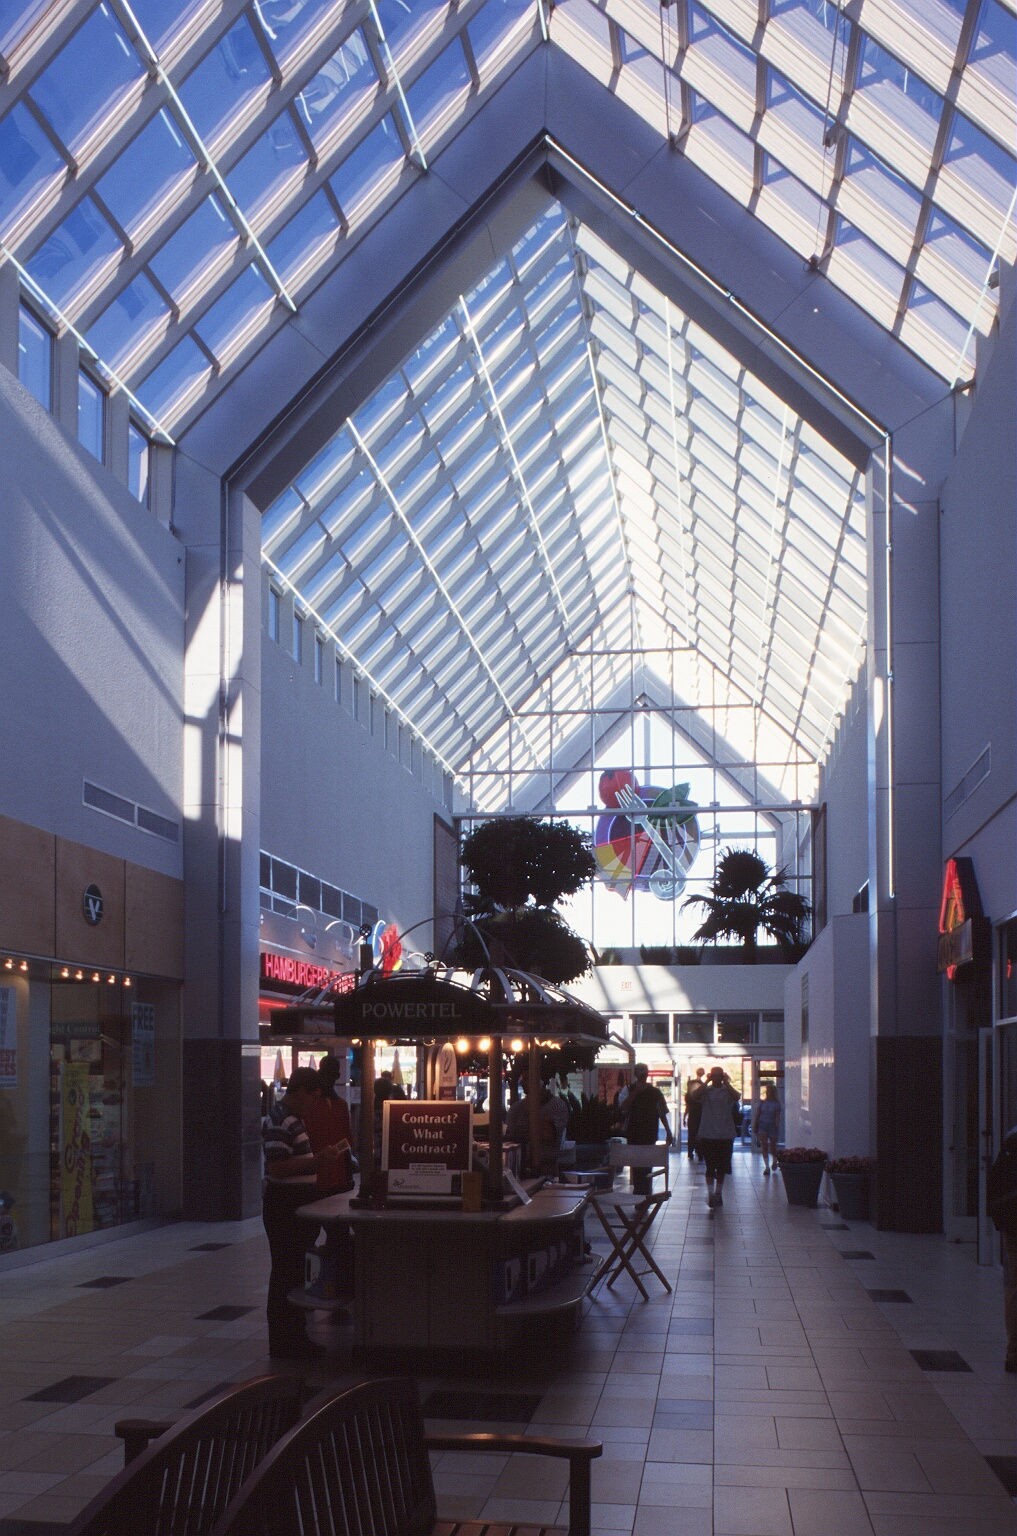 CBL Properties is in search of a part-time, Customer Service Representative for Hamilton Place Mall. CBL is an innovative retail real estate company which owns, CBL is an innovative retail real estate company which owns.